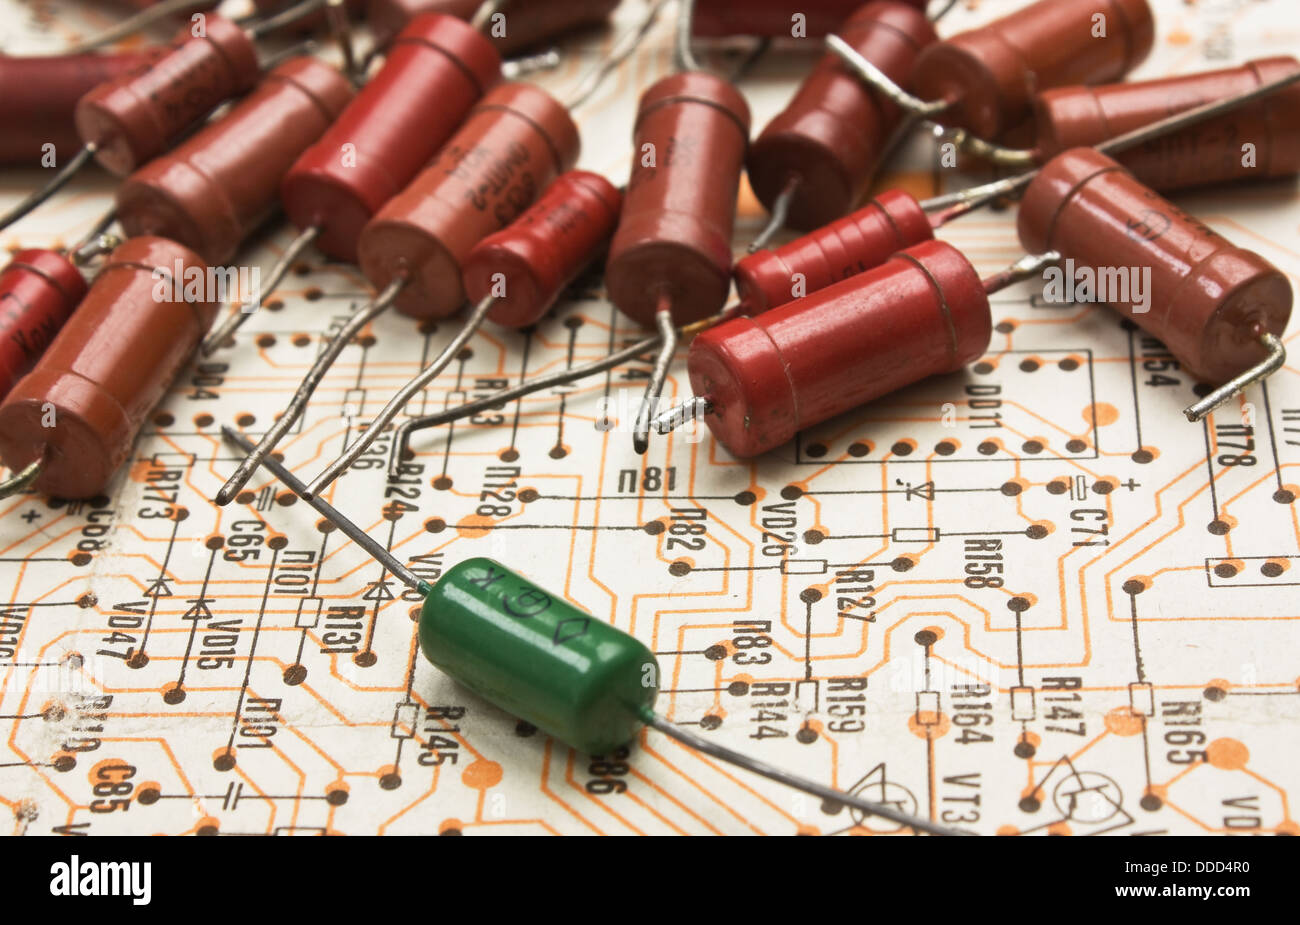 old electronic components lie on the wiring diagram stock photo old electronic components lie on the wiring diagram